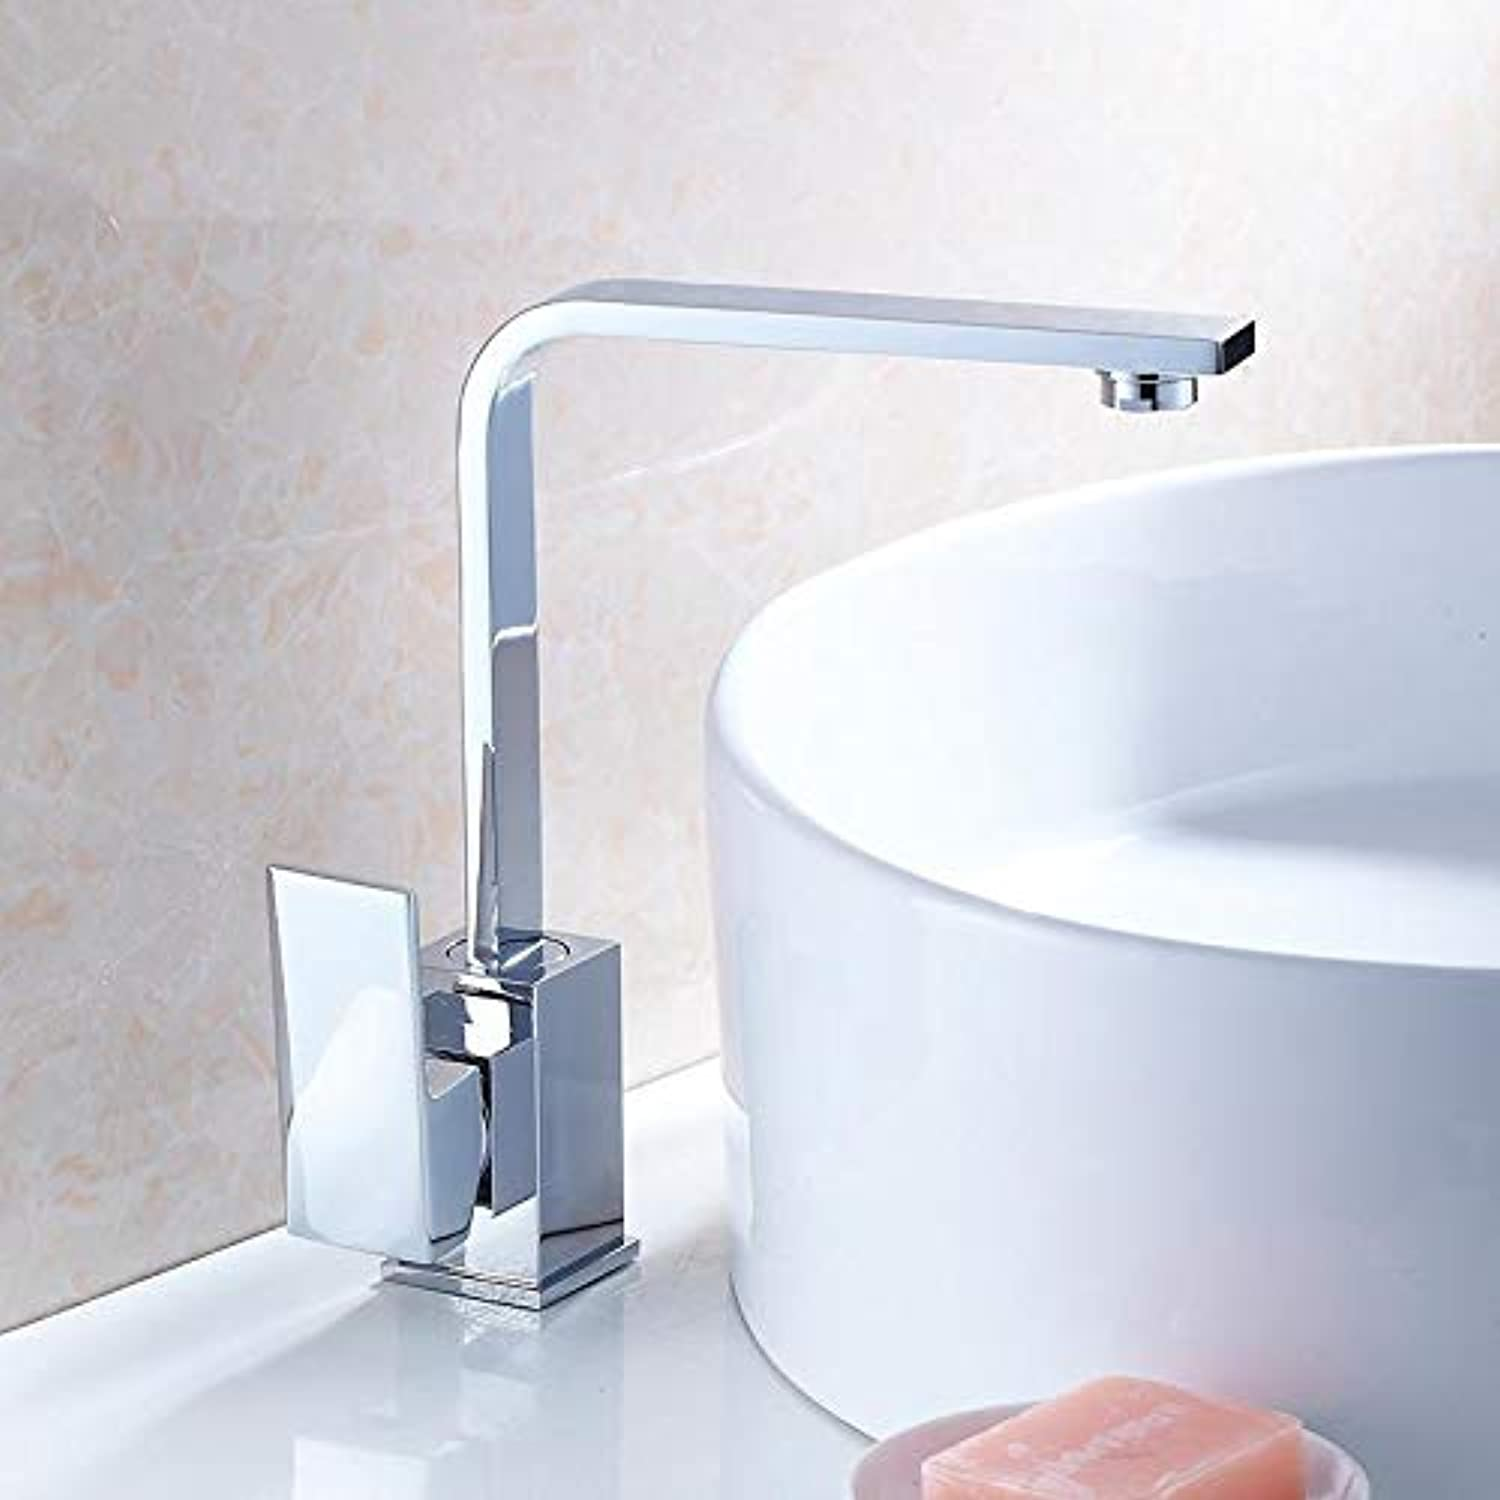 Taps Faucet Kitchen Faucet Sink Sink Basin Above Counter Basin Hot and Cold Water Faucet Square Flat Tube redating Water